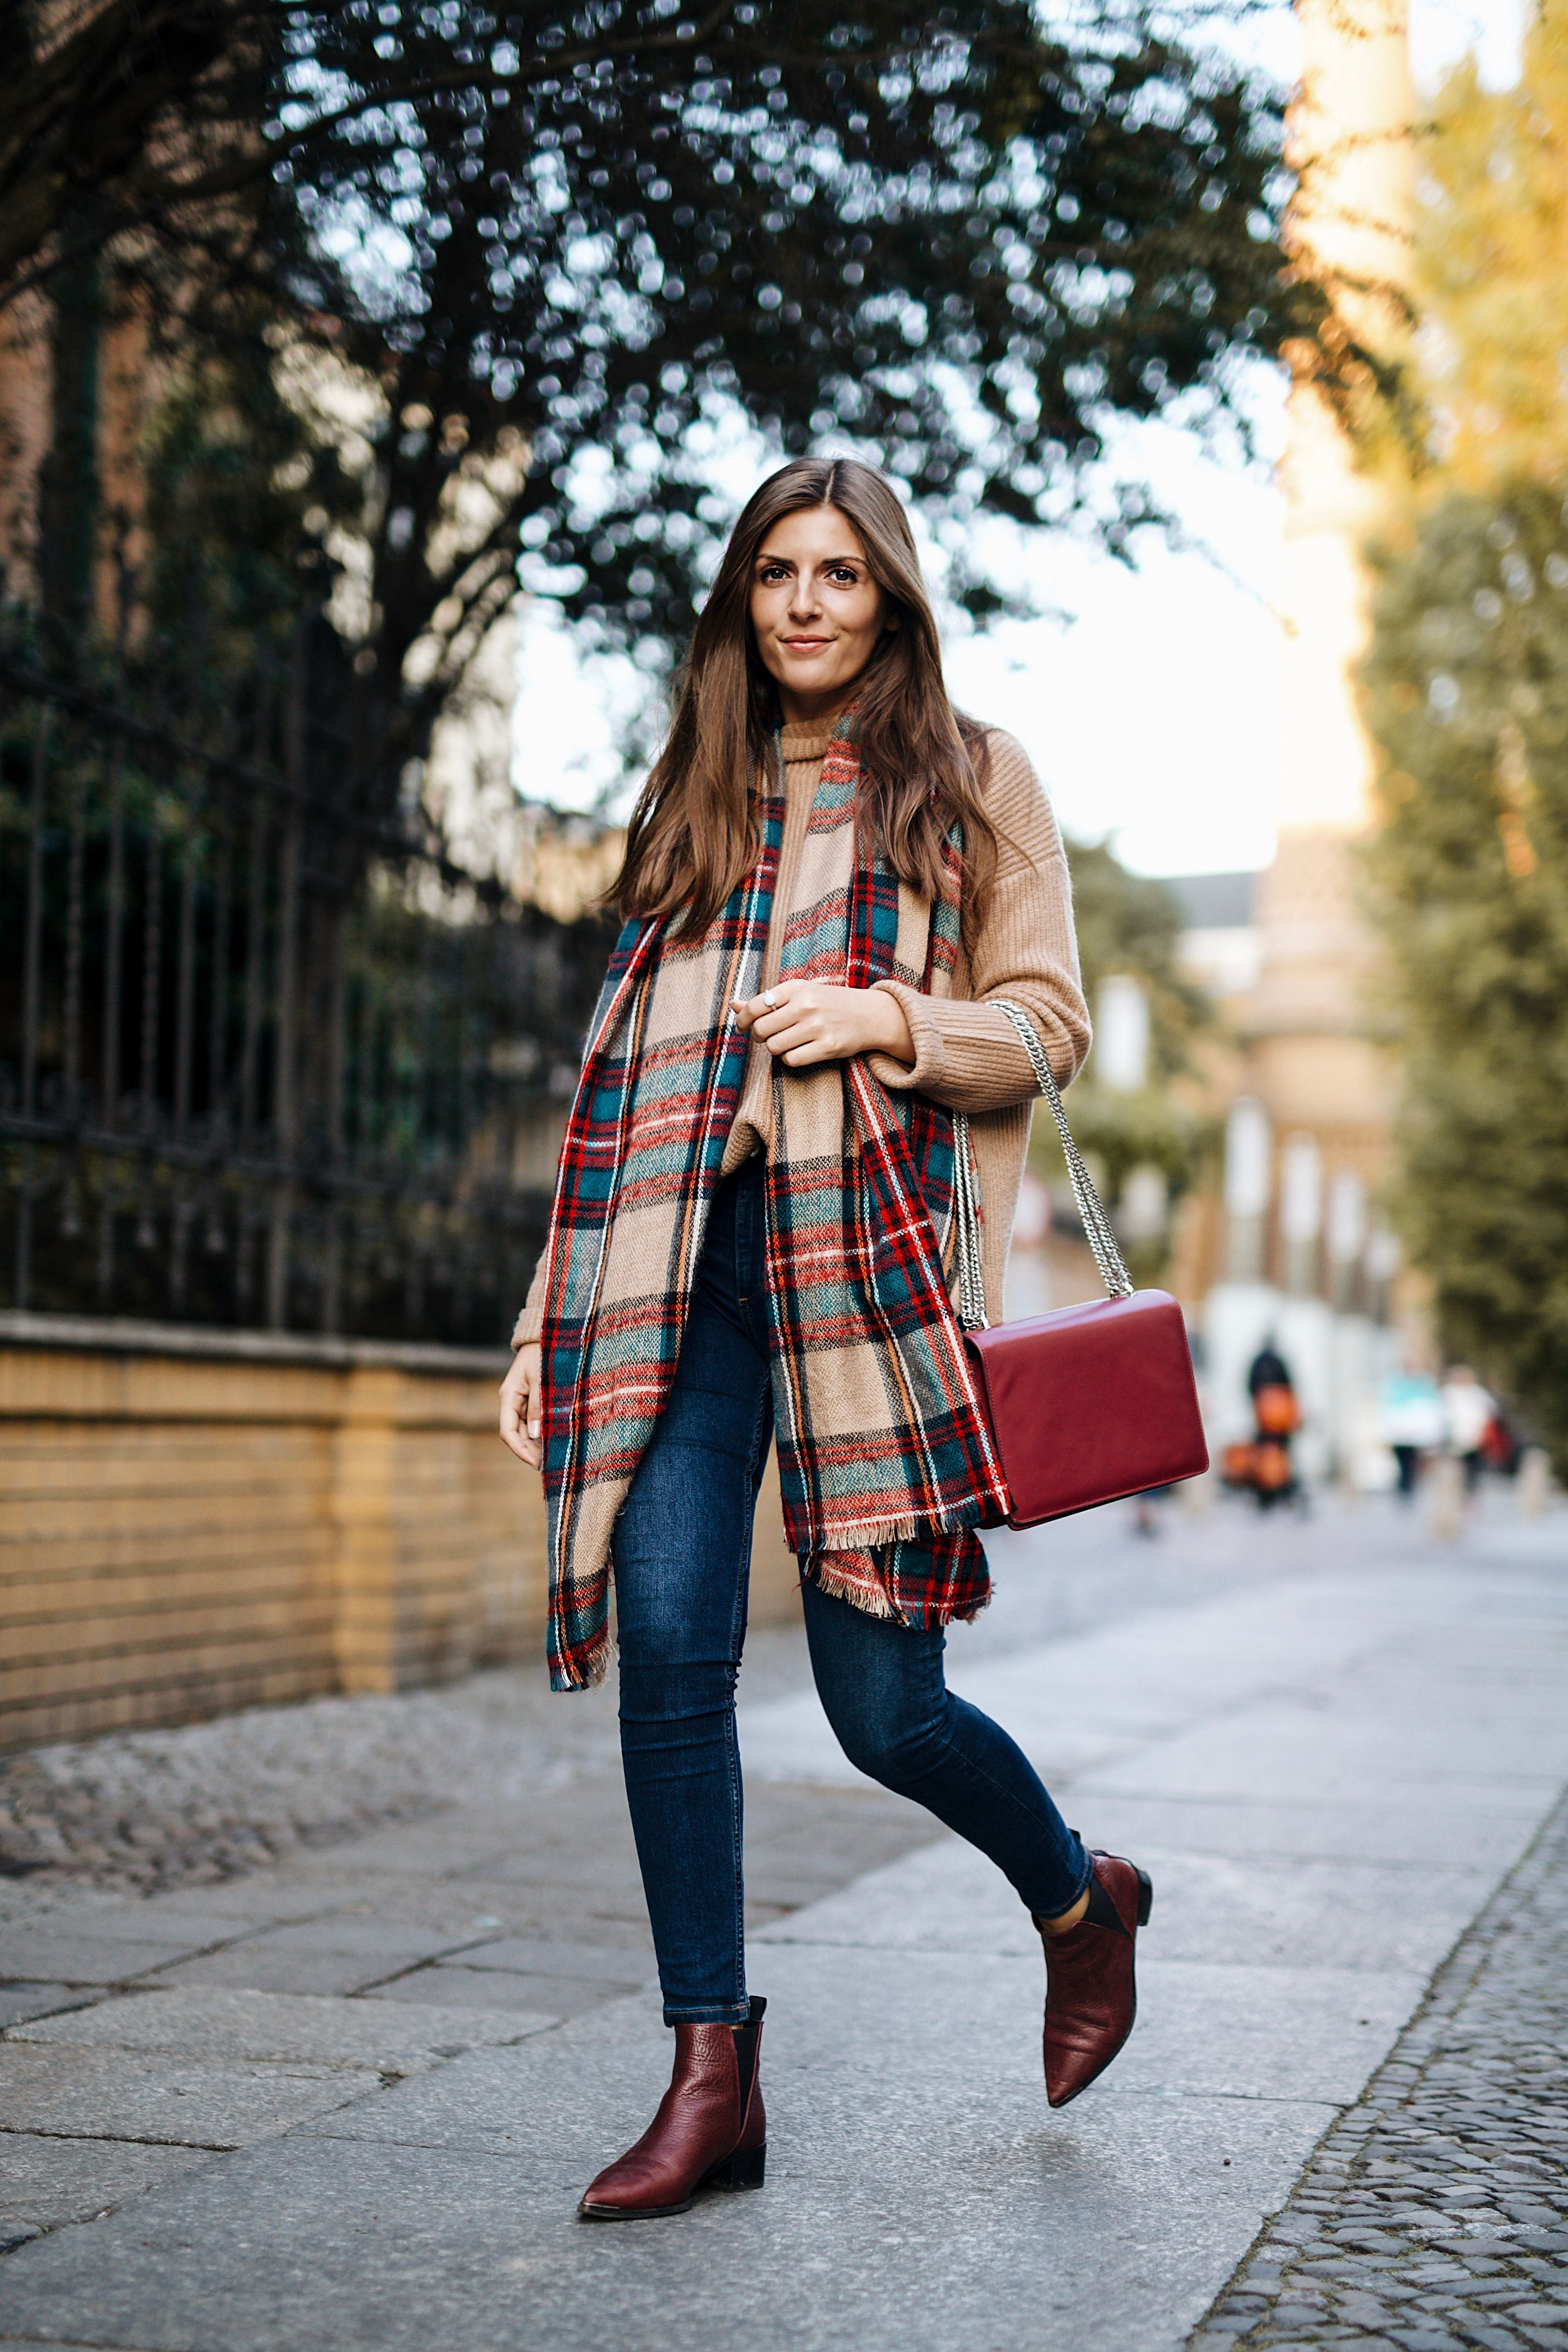 cd757c5209 A Basic Autumn Look for Everyday Life